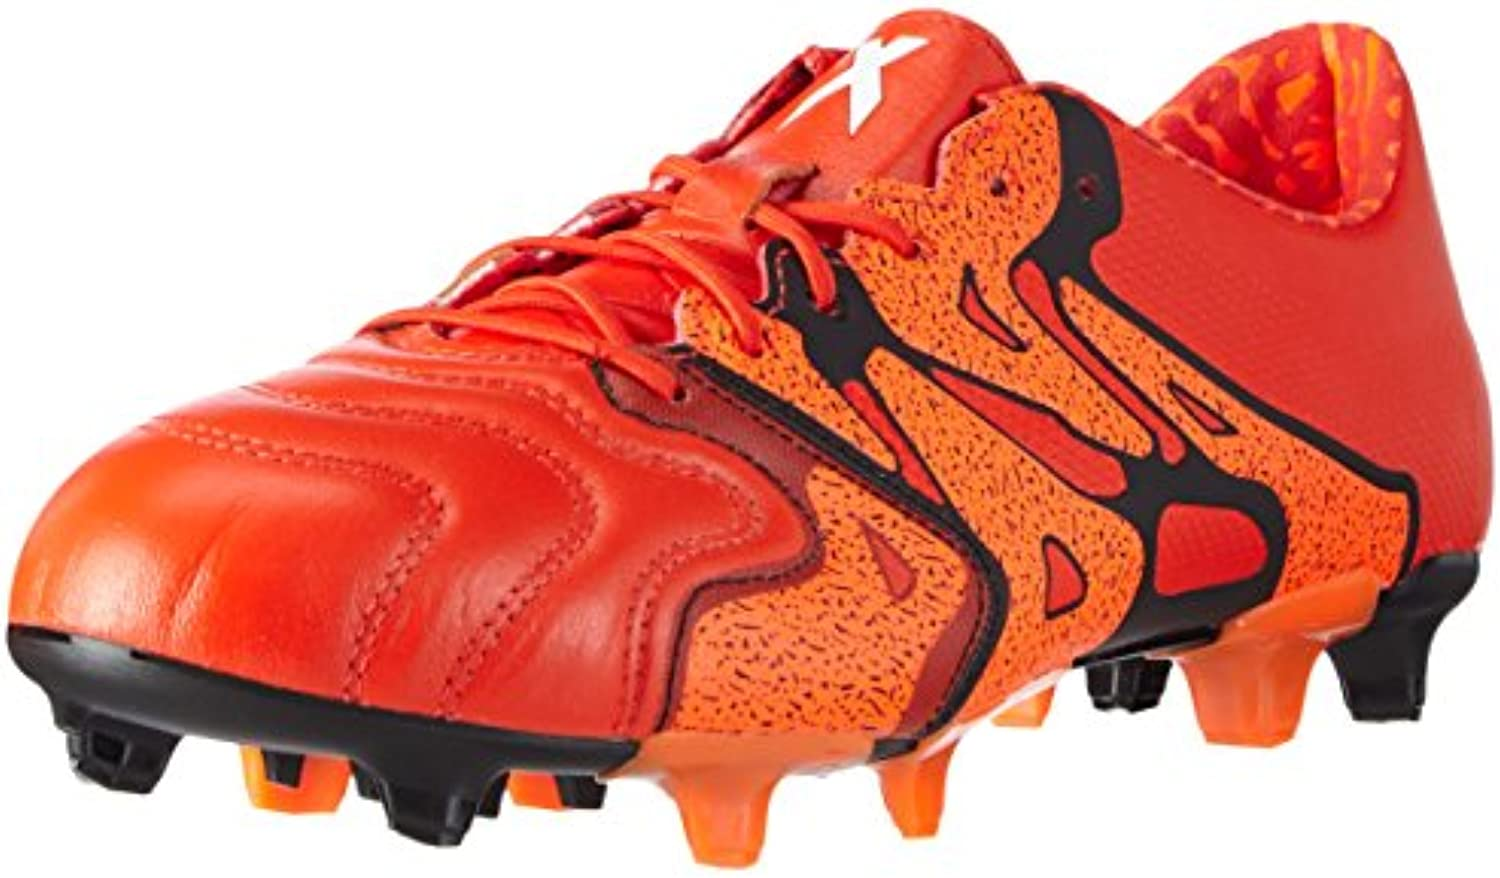 Adidas PerformanceX15.1 FG AG Leather - Scarpe da Calcio Uomo | Exit